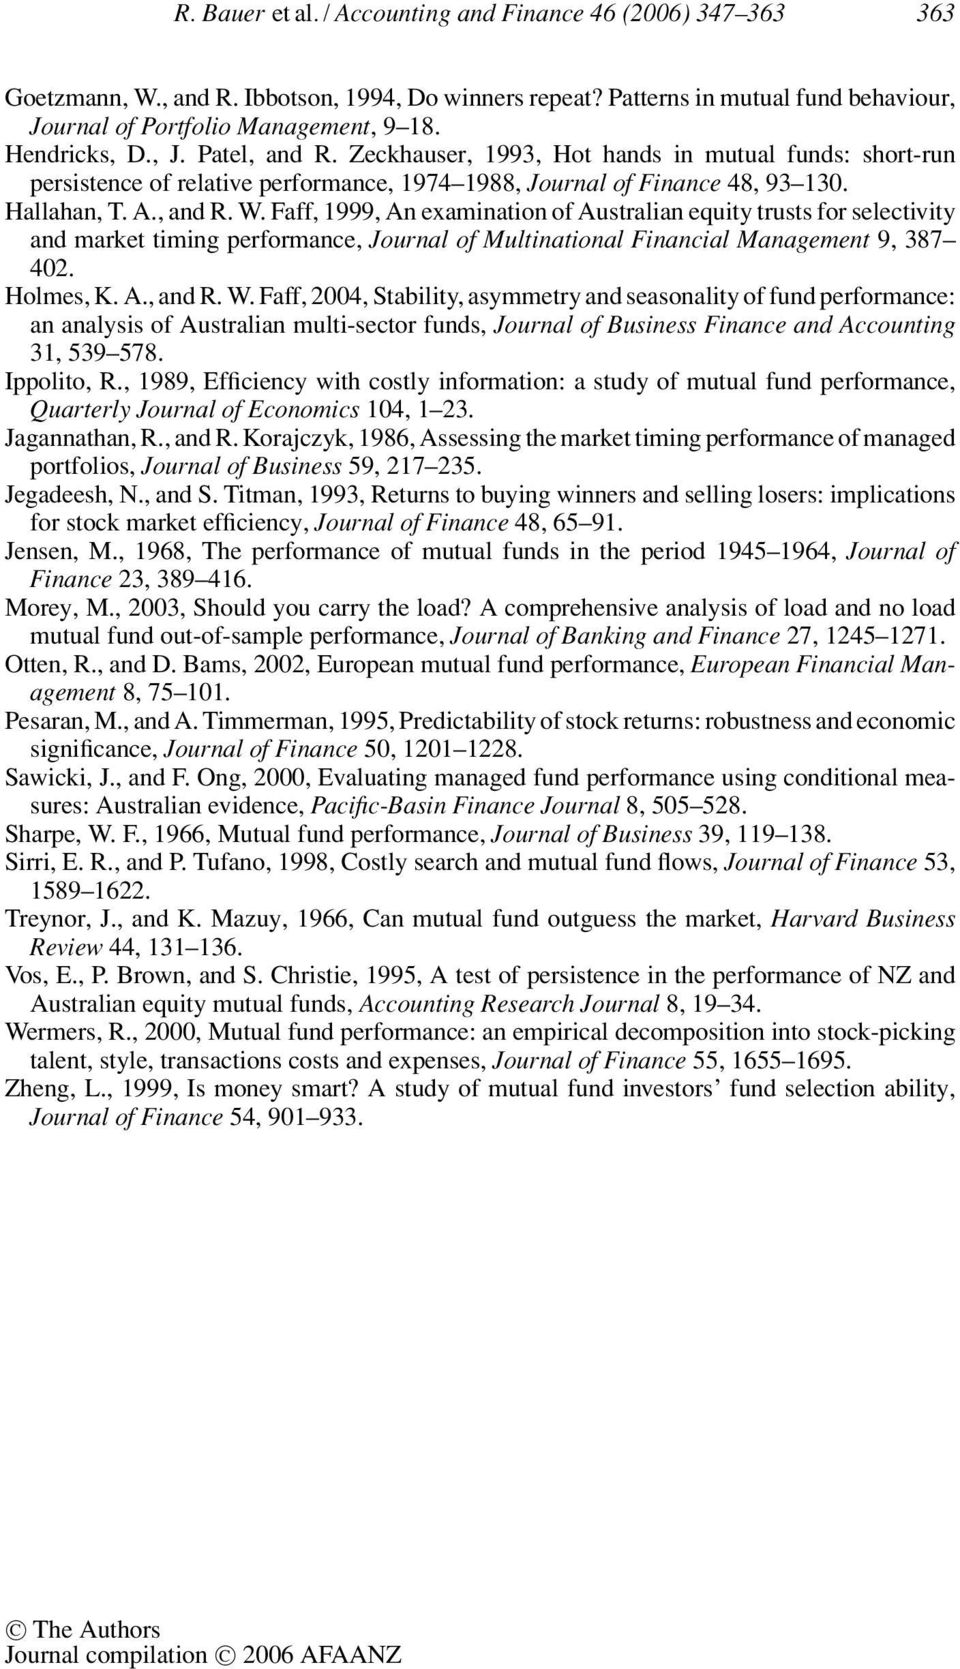 Faff, 1999, An examination of Australian equity trusts for selectivity and market timing performance, Journal of Multinational Financial Management 9, 387 402. Holmes, K. A., and R. W.